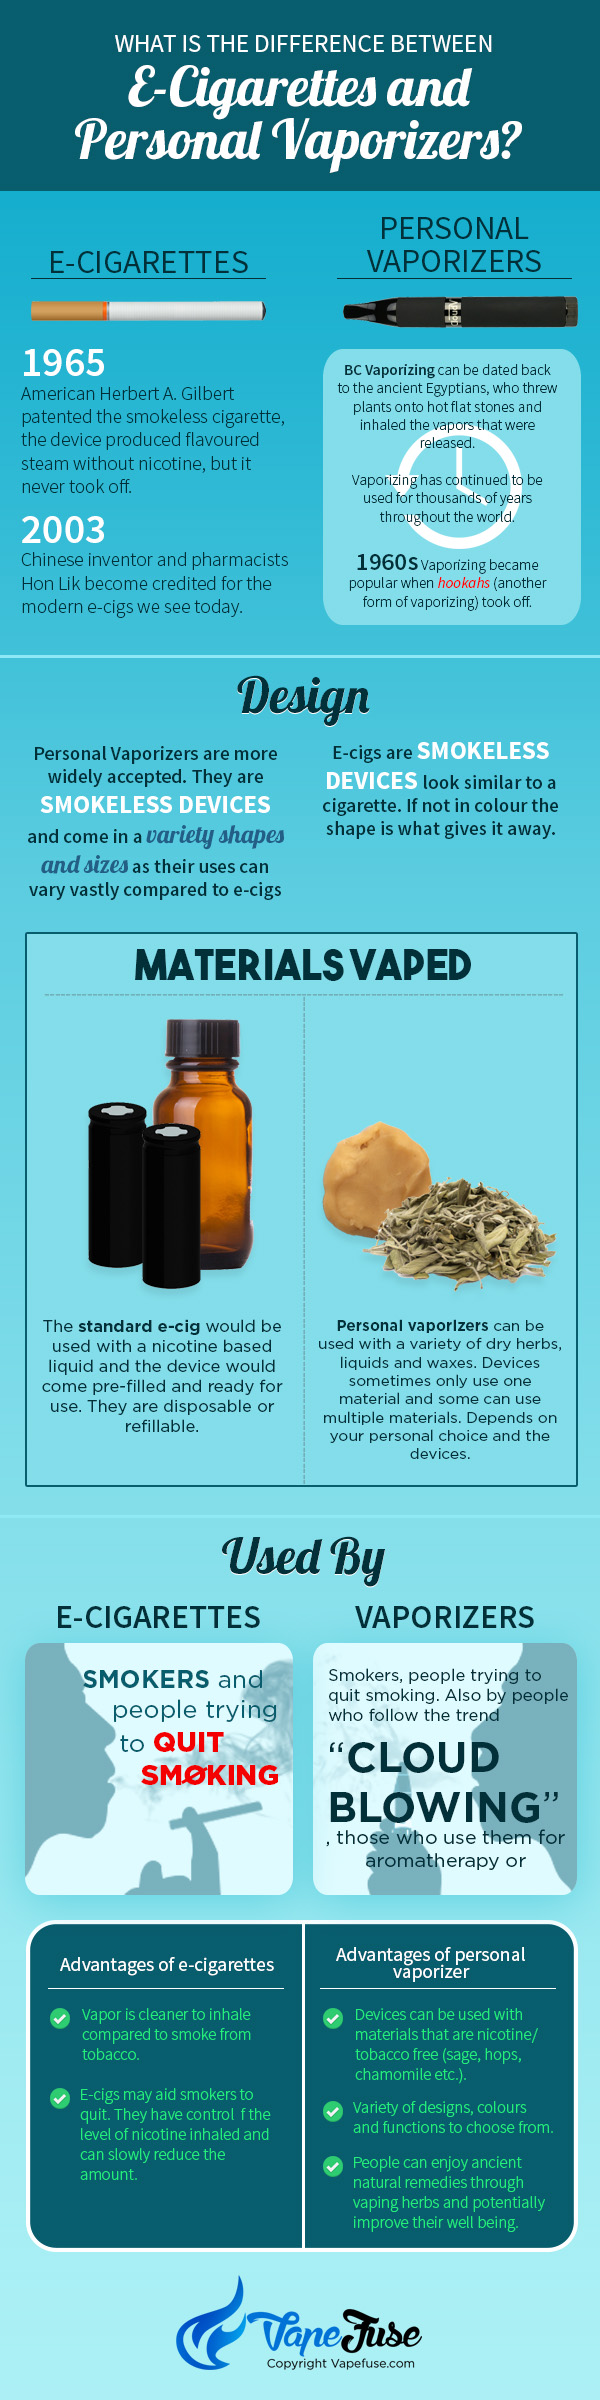 The Difference Between E-Cigs and Personal Vapes